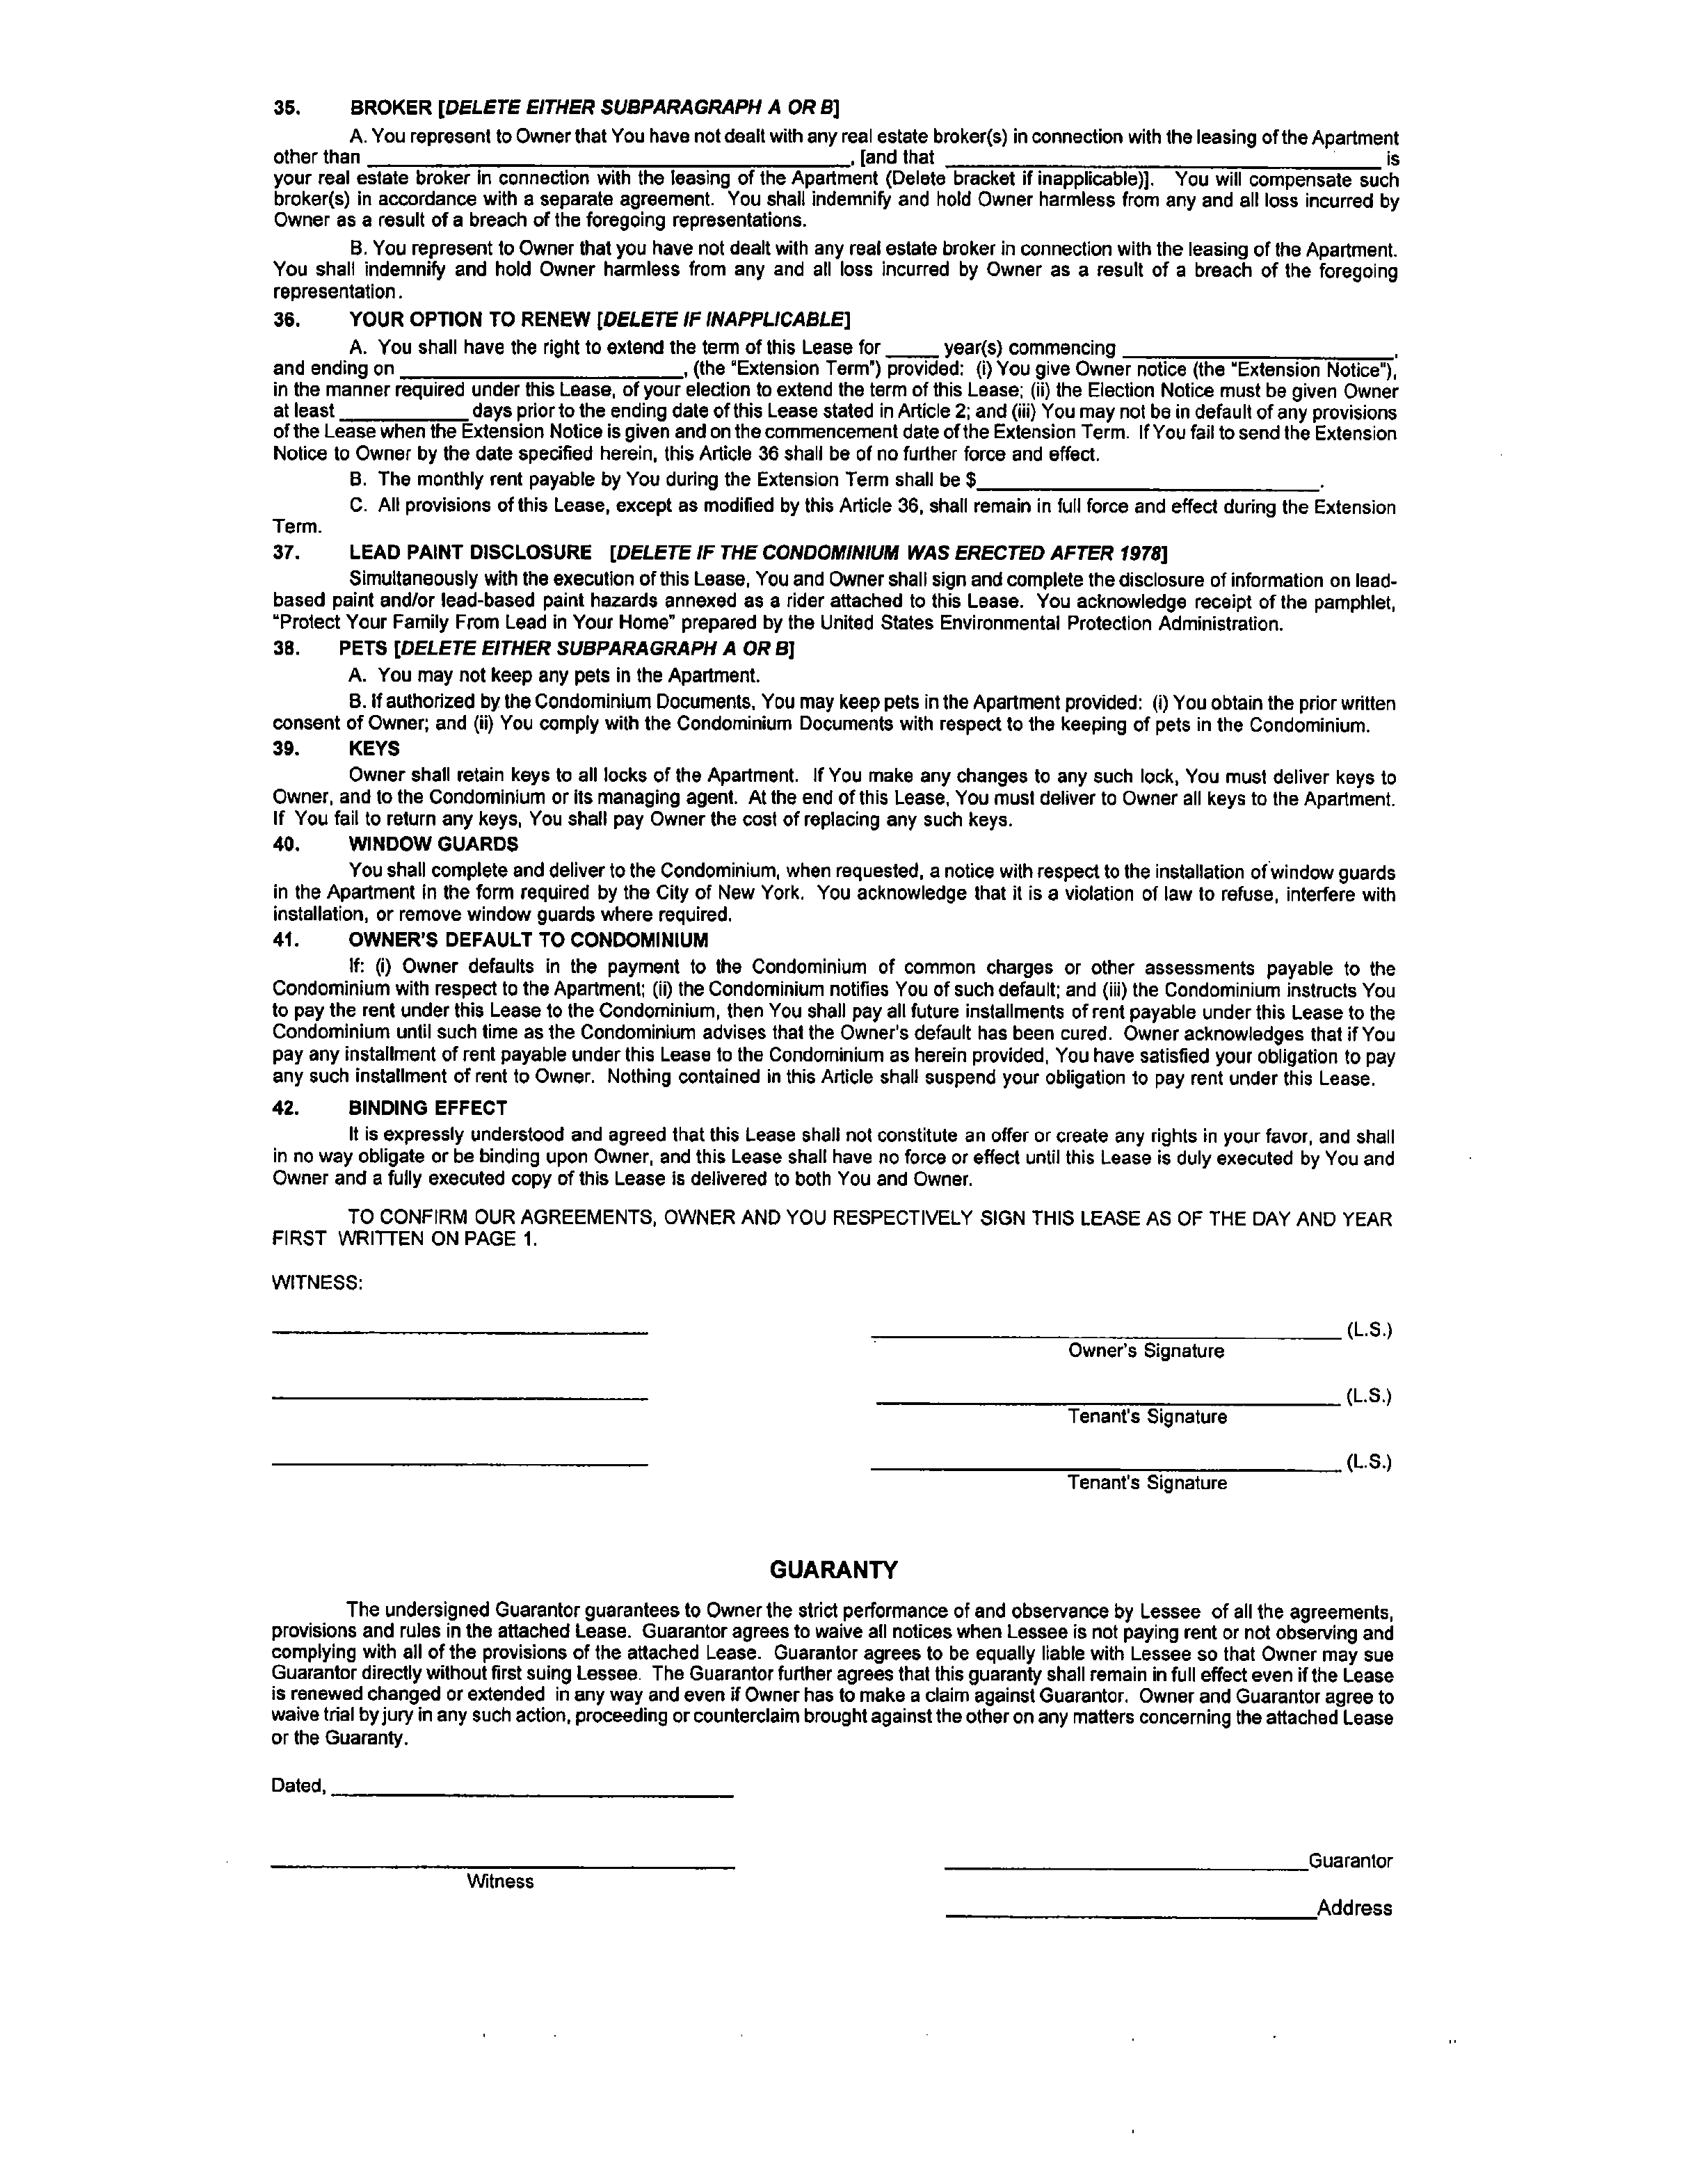 Standard Form Of Condominium Lease Agreement Free Download